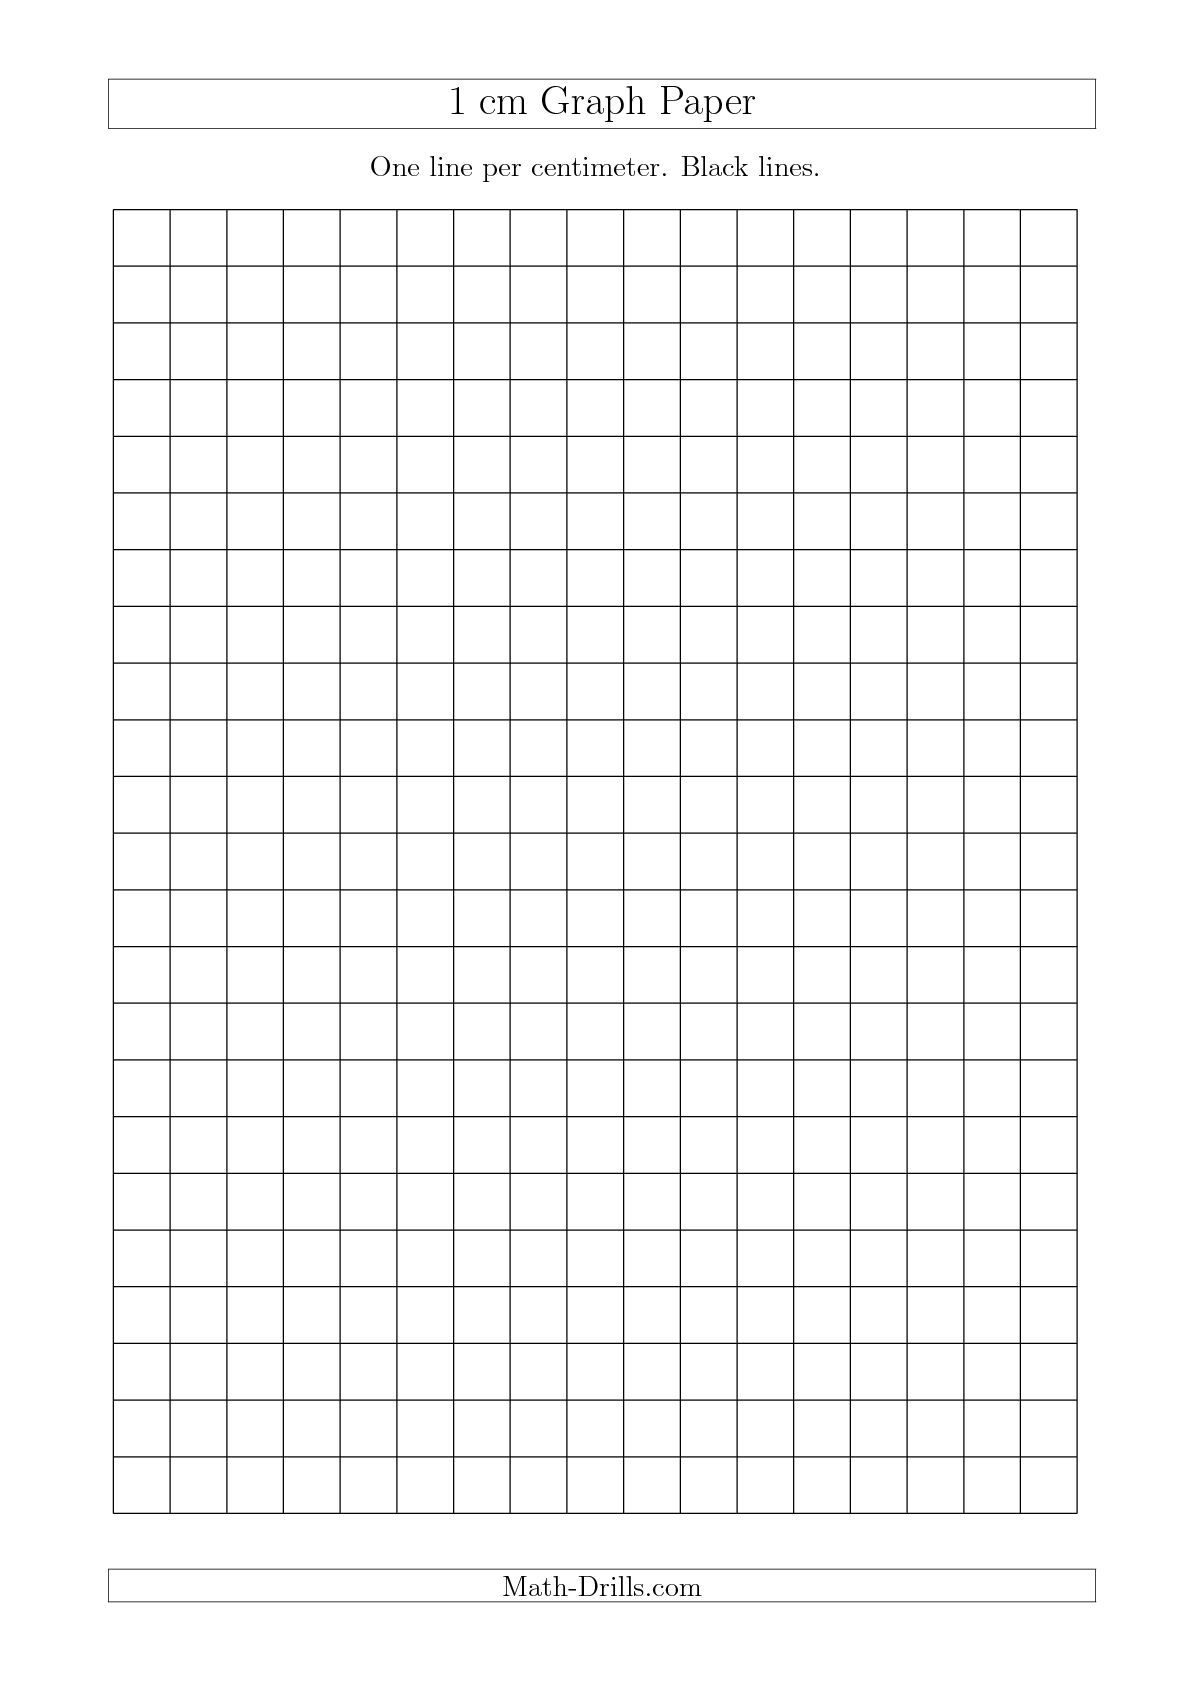 1 Cm Graph Paper With Black Lines A4 Size A Math